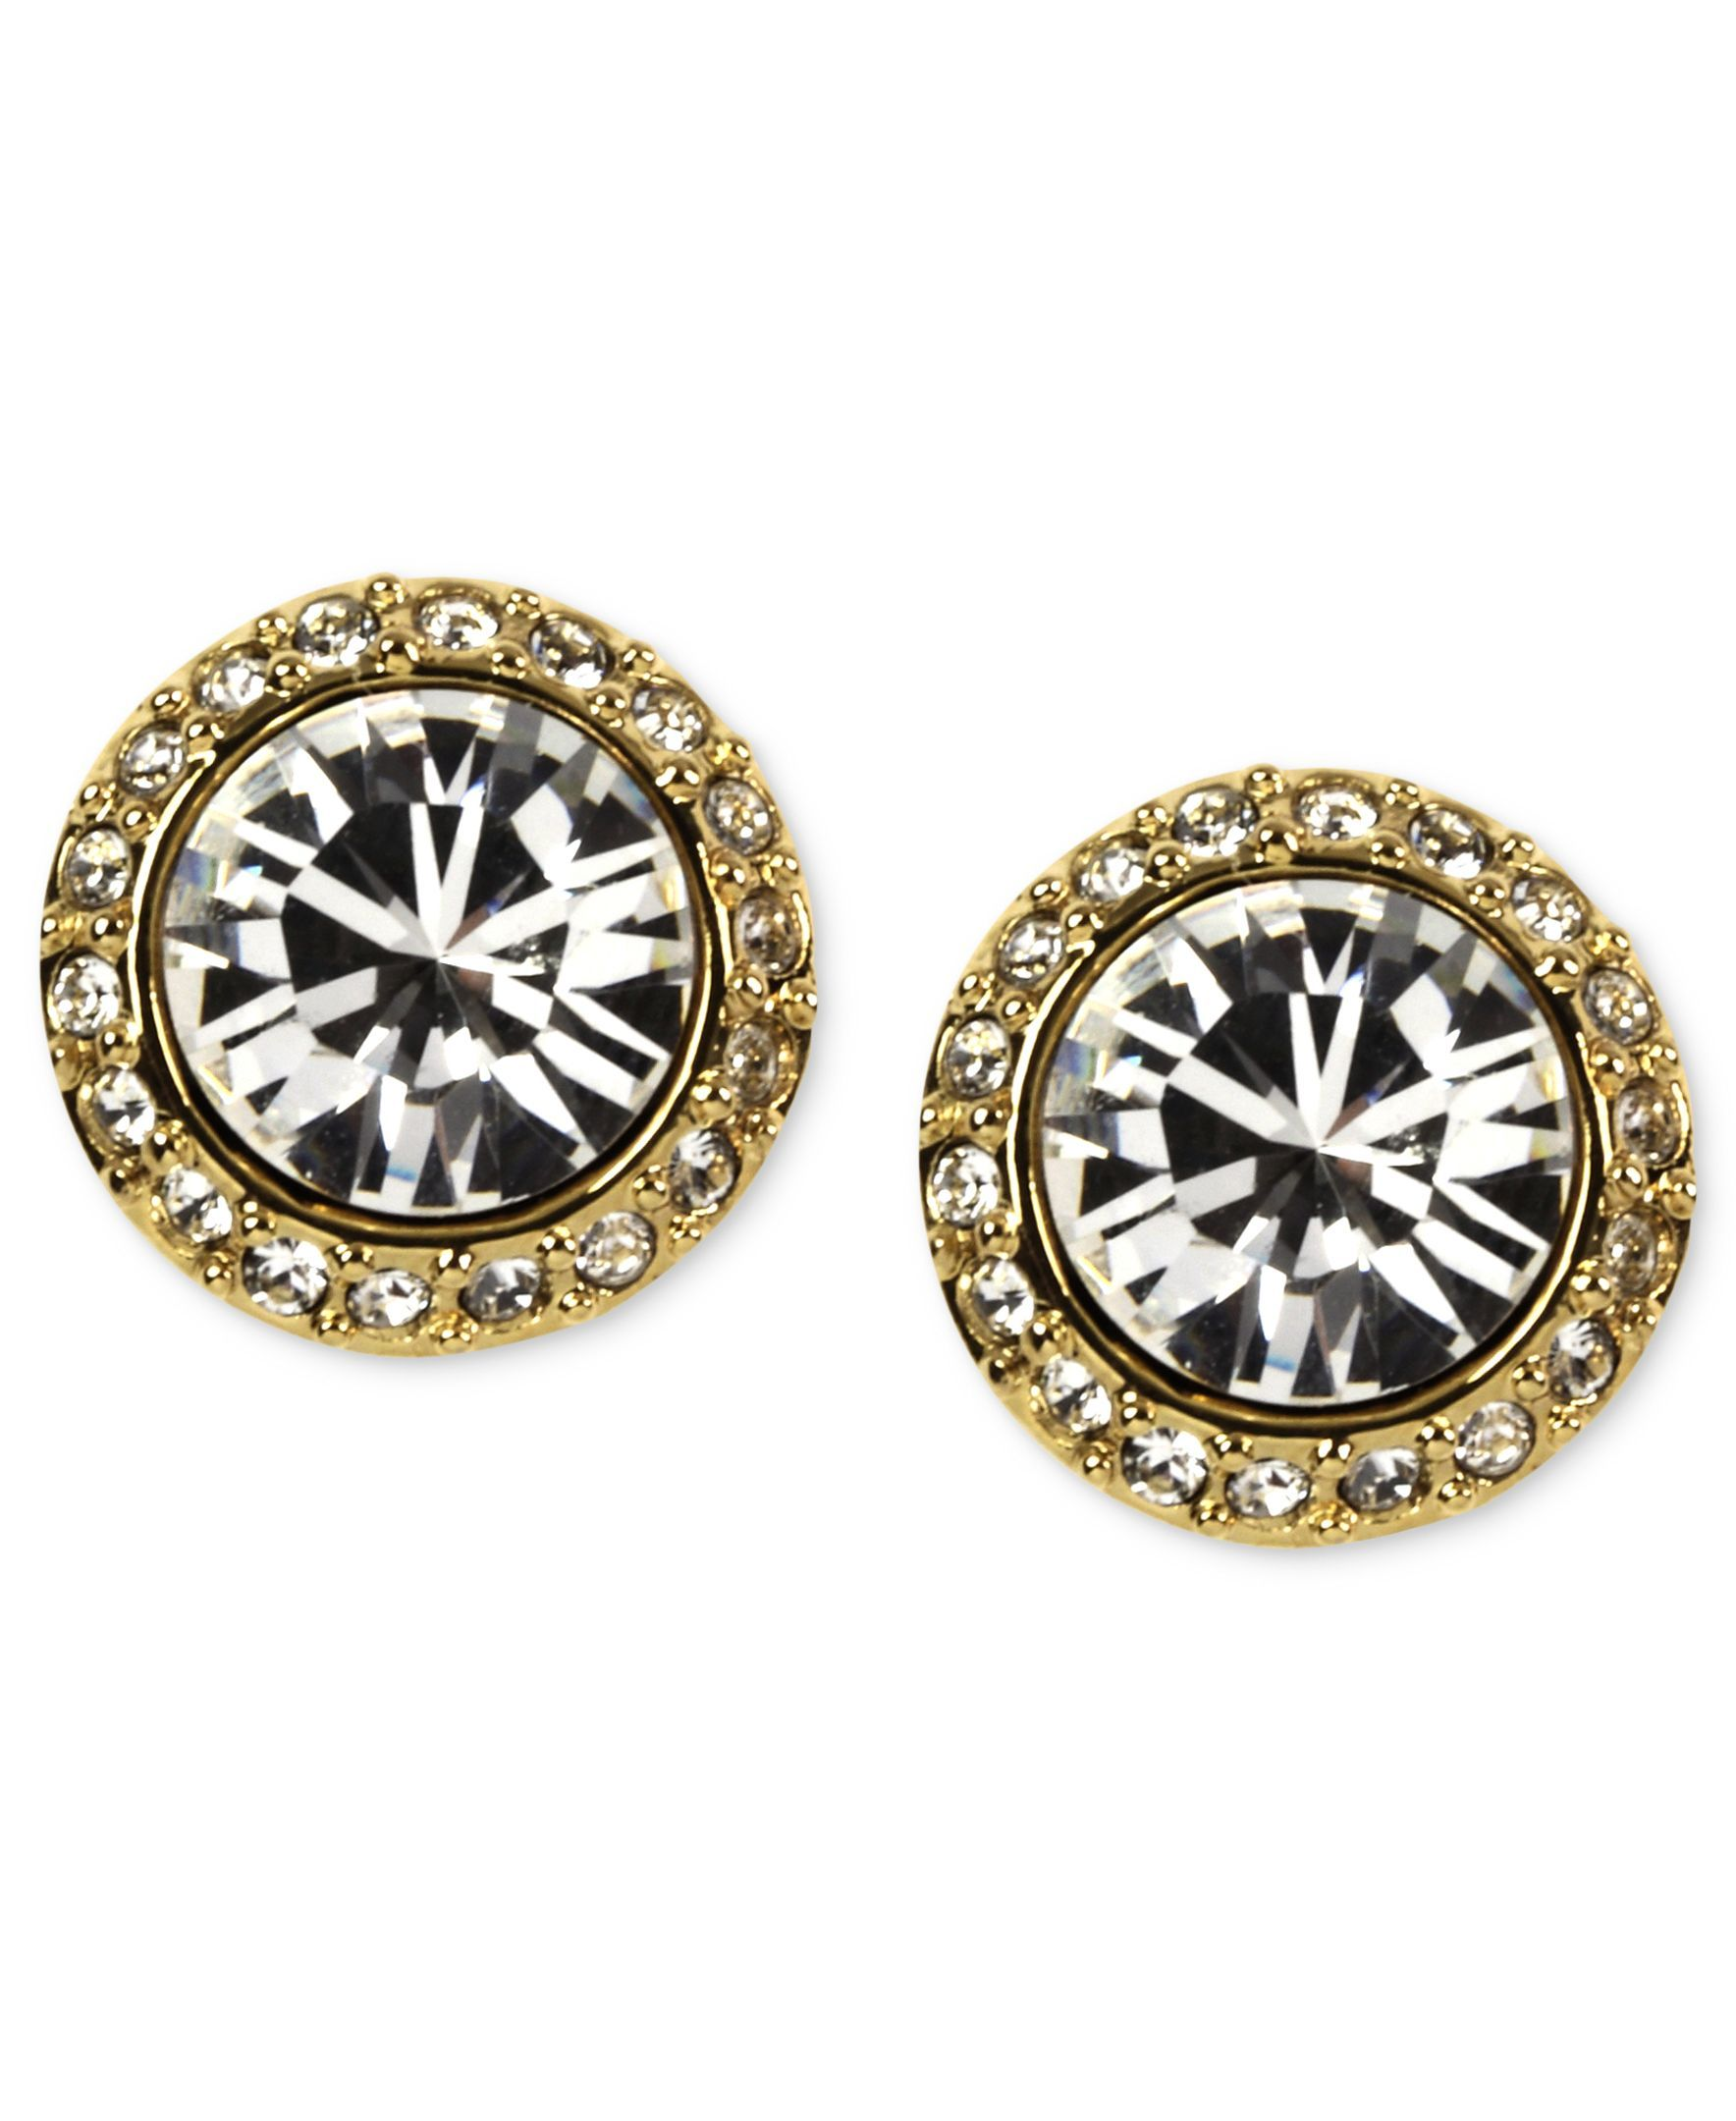 0dbe6f2c6 Givenchy Earrings, Gold-Tone Swarovski Element Button Earrings ...